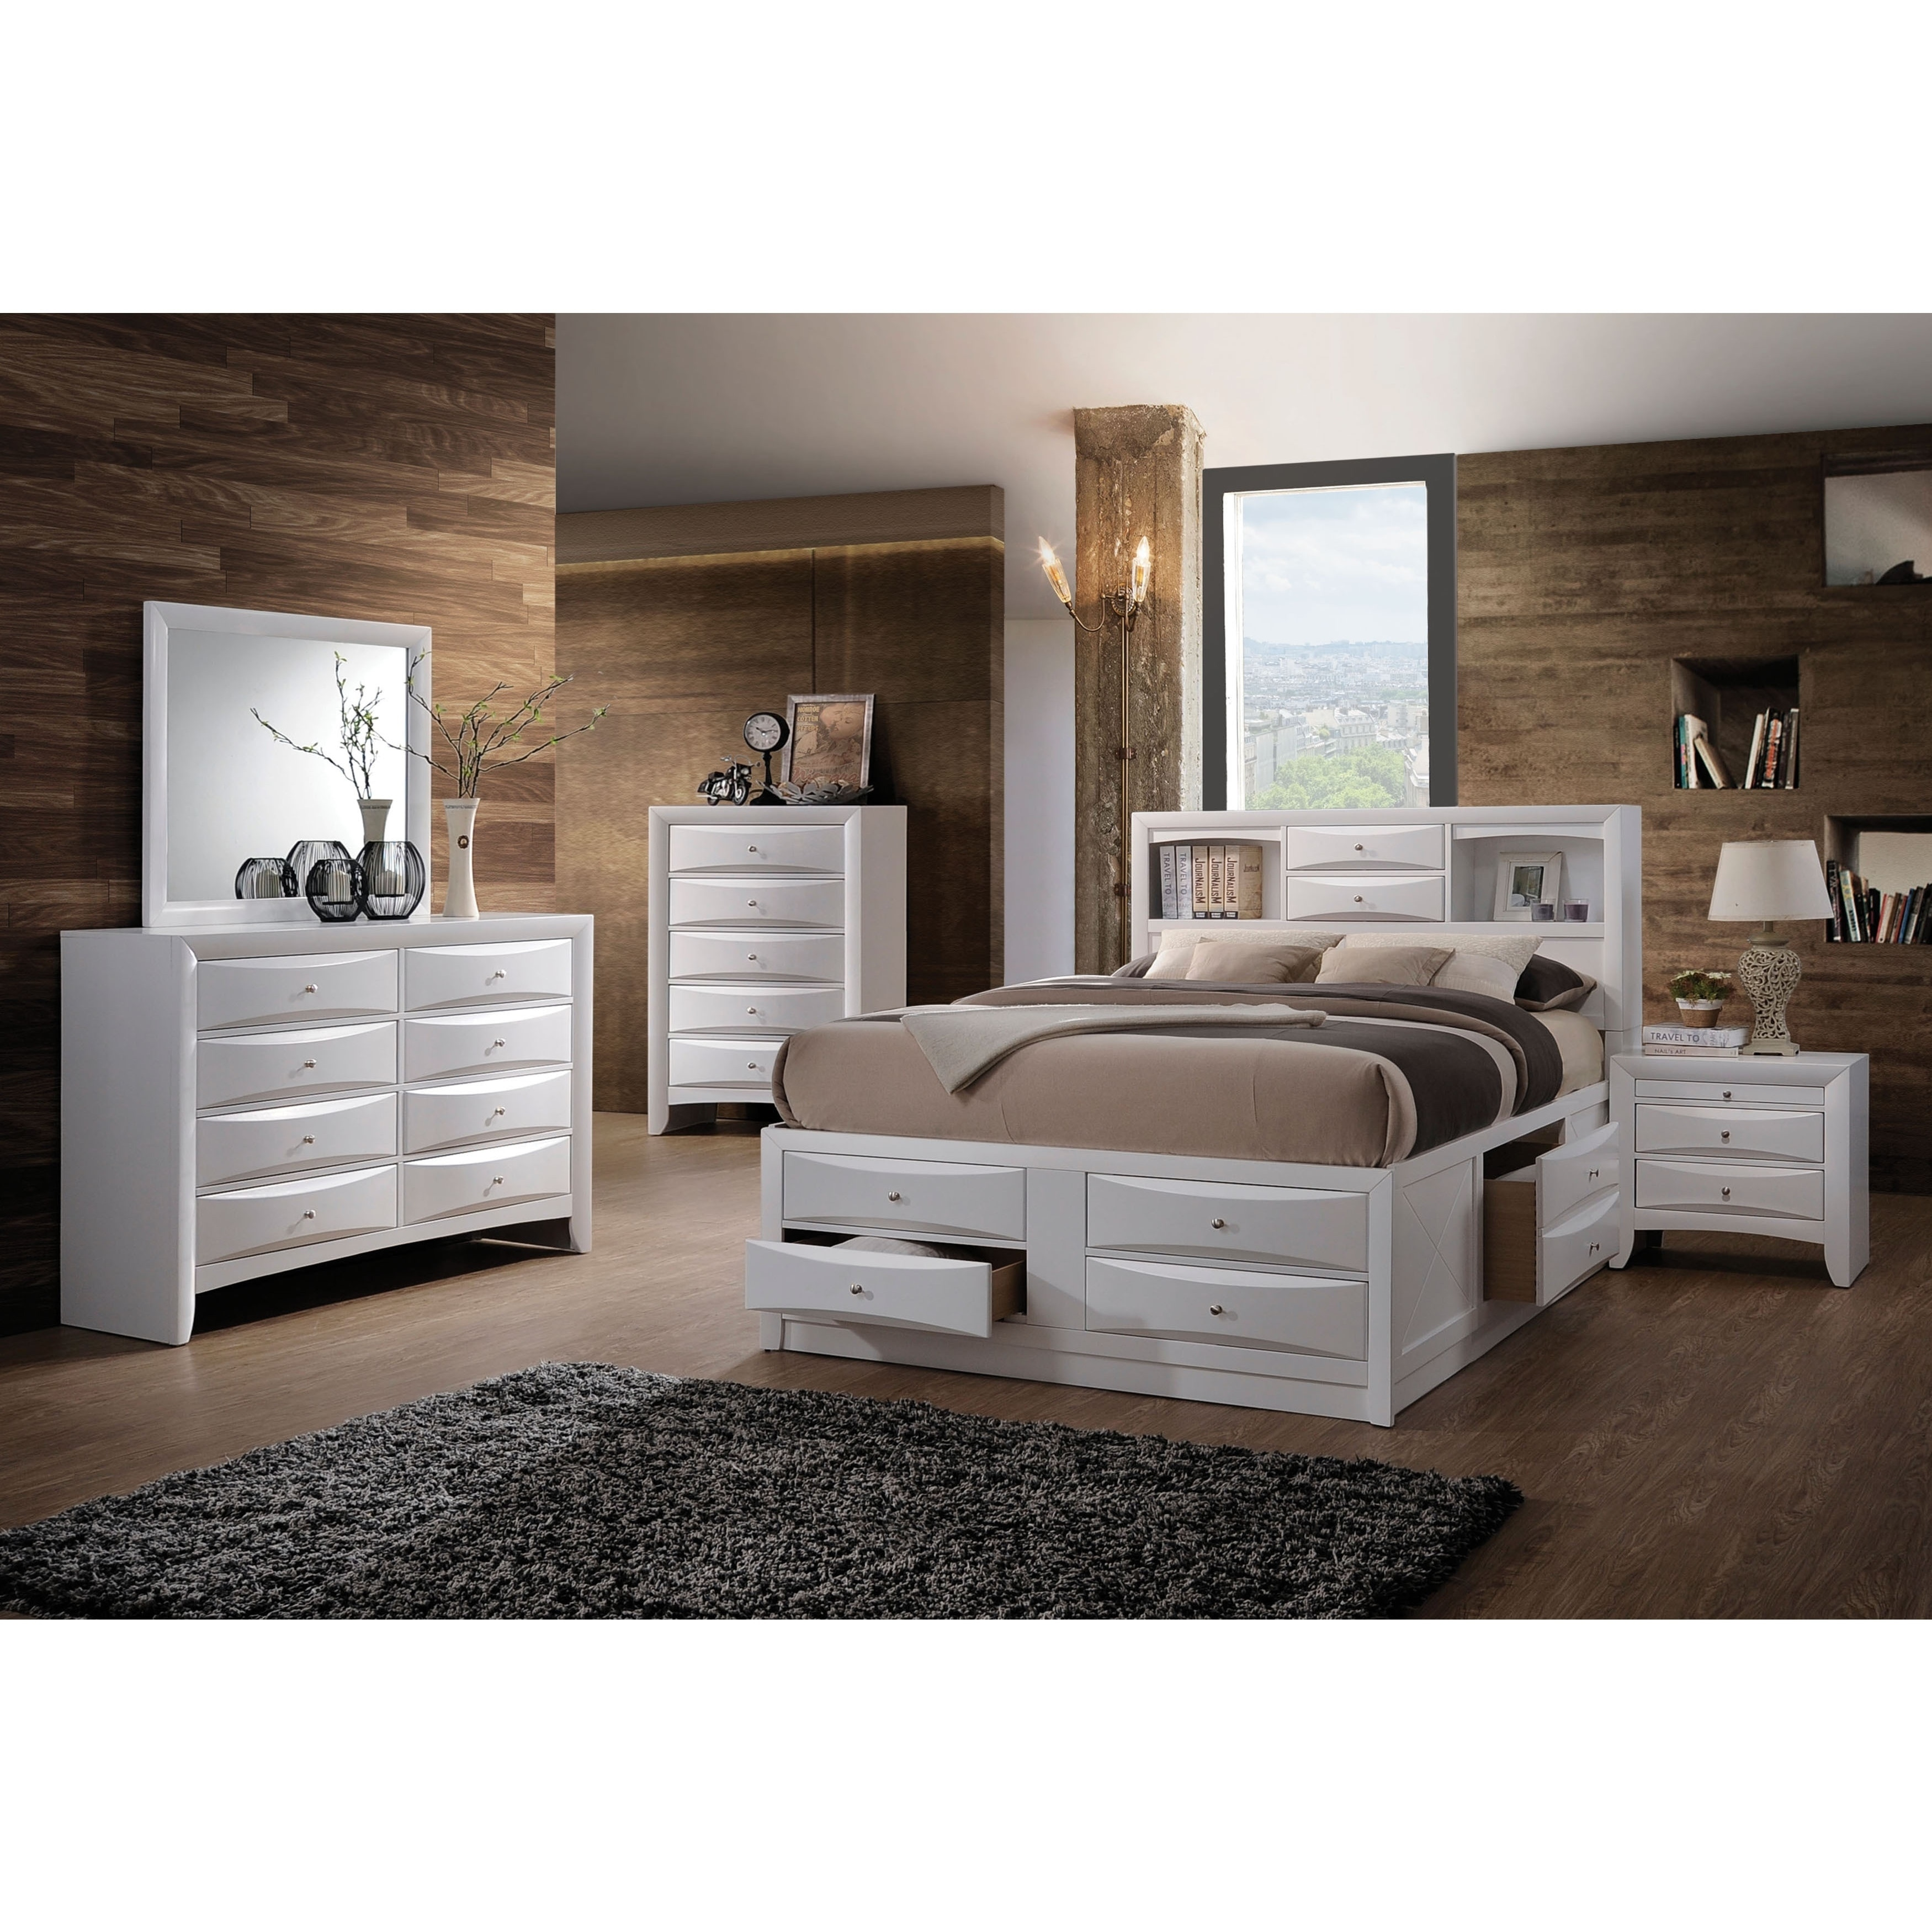 Bedding Storage Acme Furniture Ireland Bed With Storage White